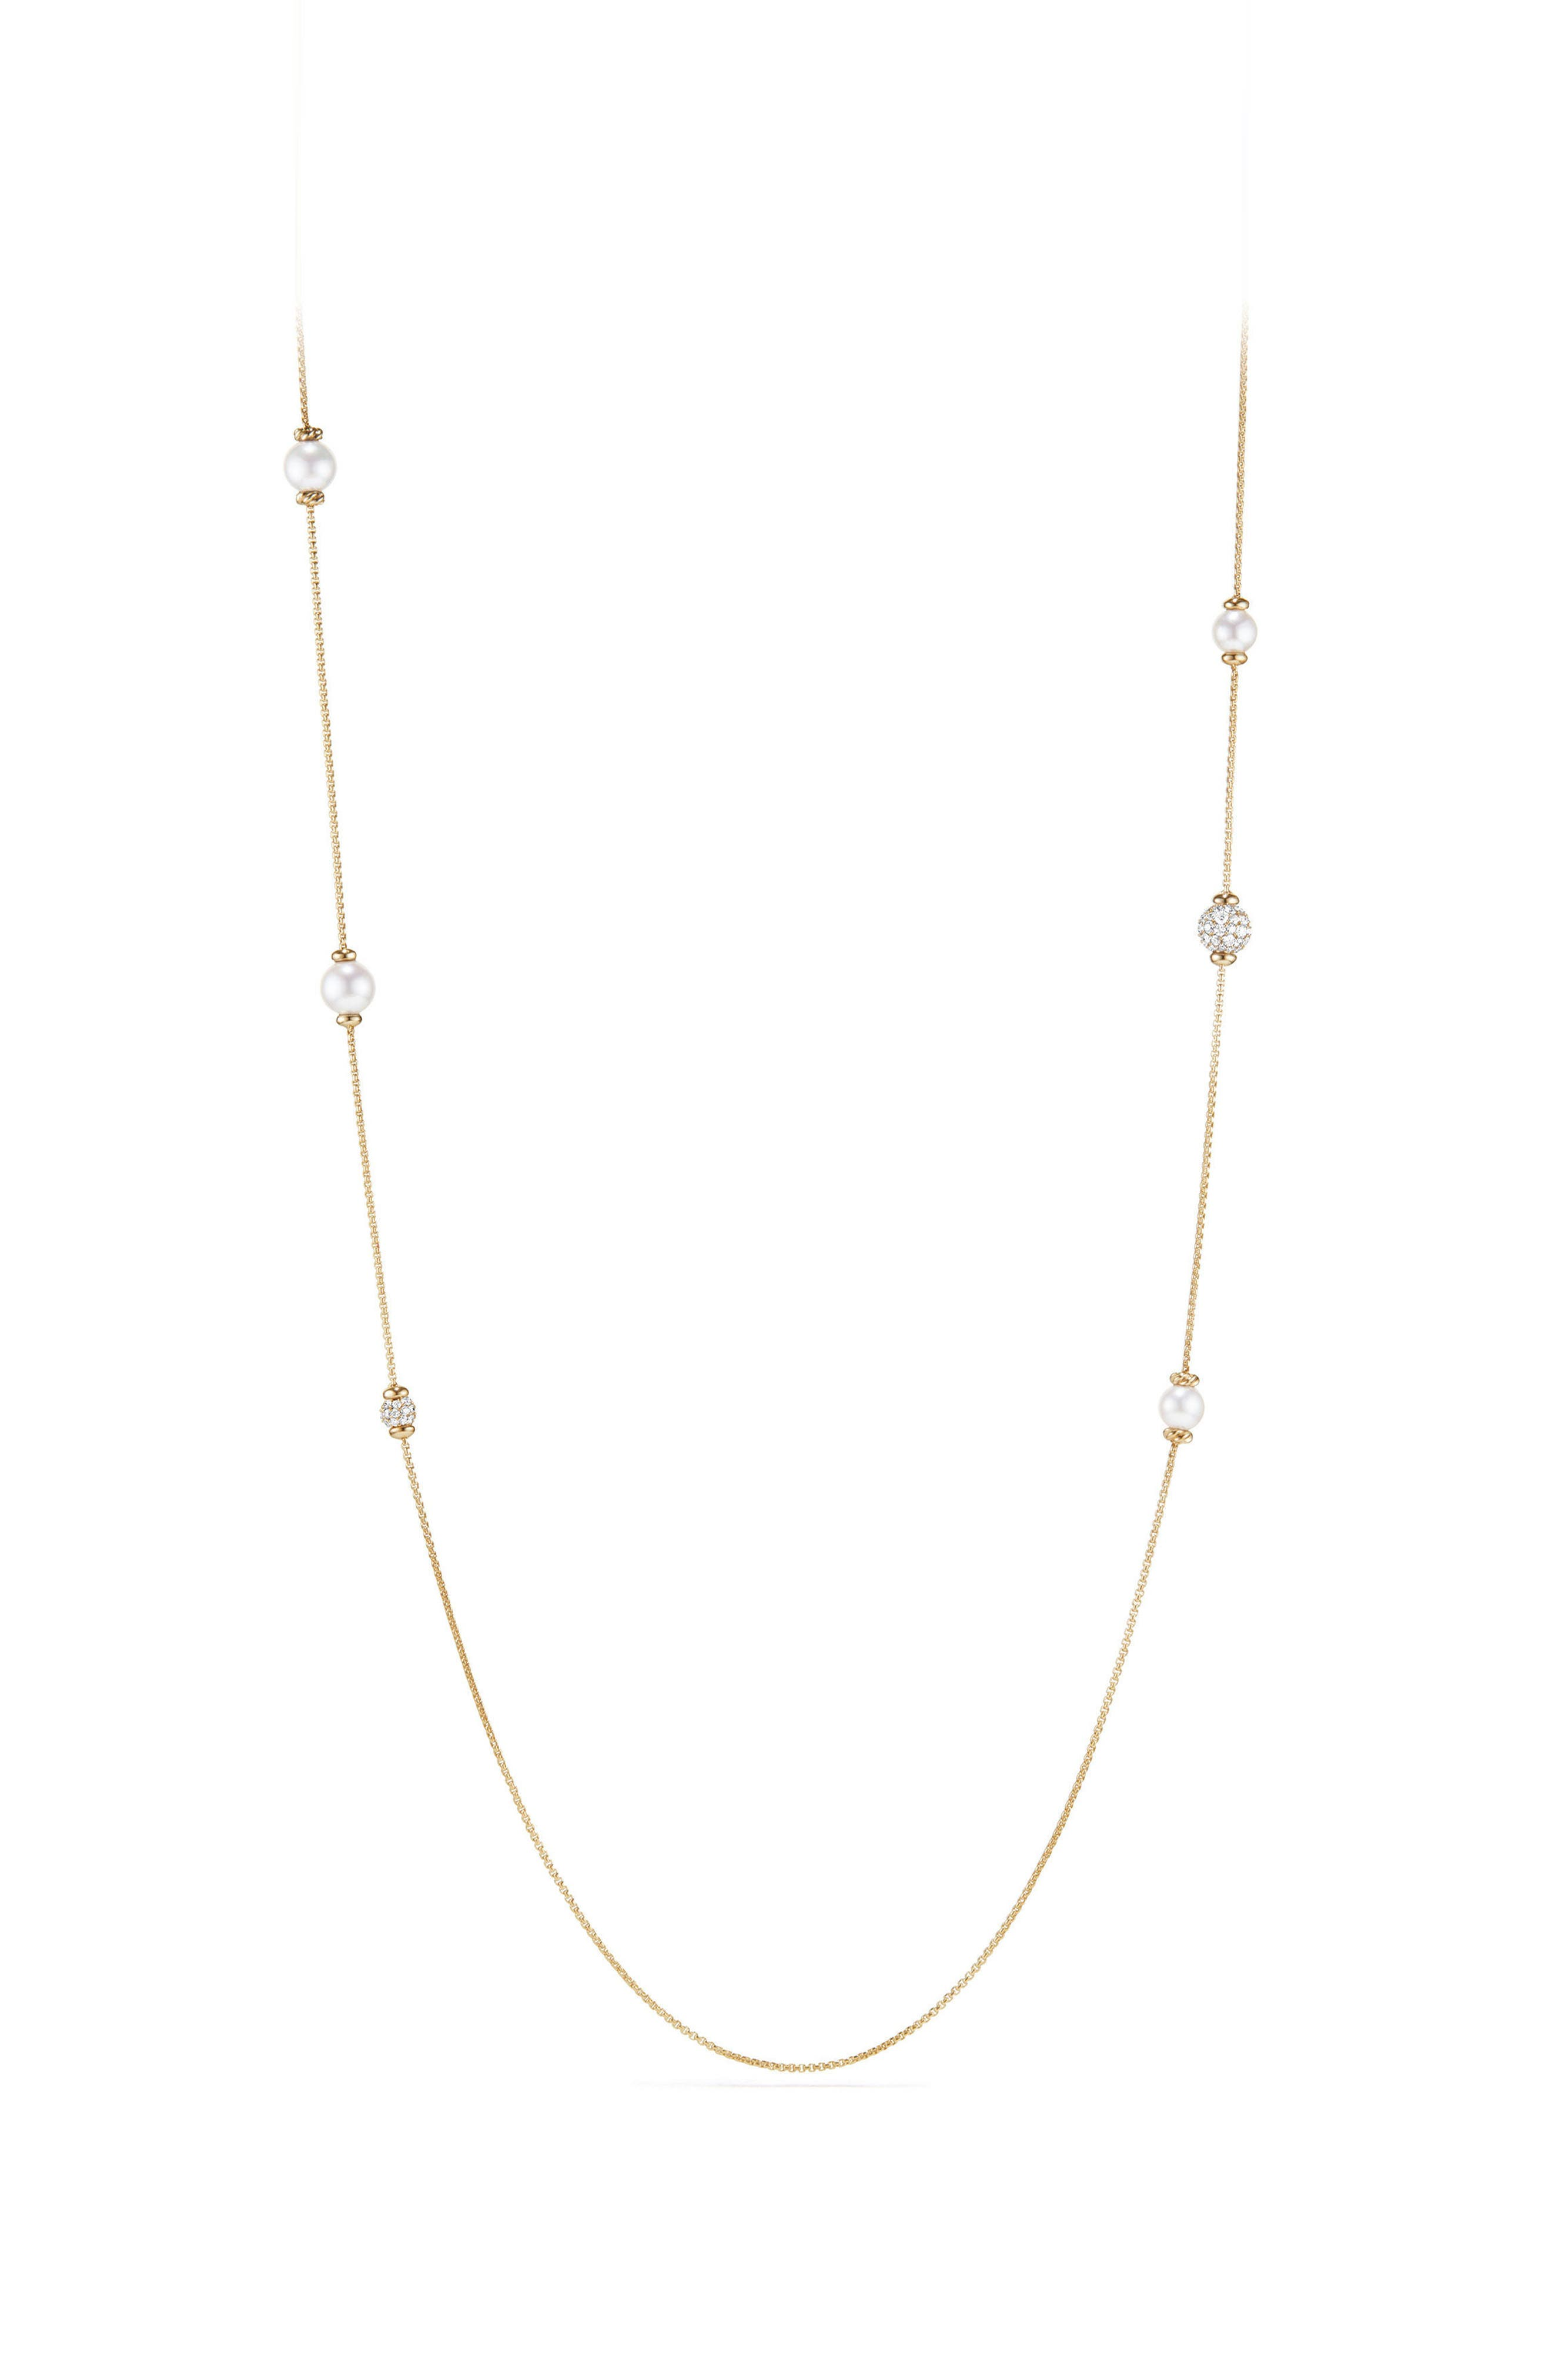 Solari Long Station Necklace with Pearls & Diamonds in 18K Yellow Gold,                         Main,                         color, YELLOW GOLD/ DIAMOND/ PEARL